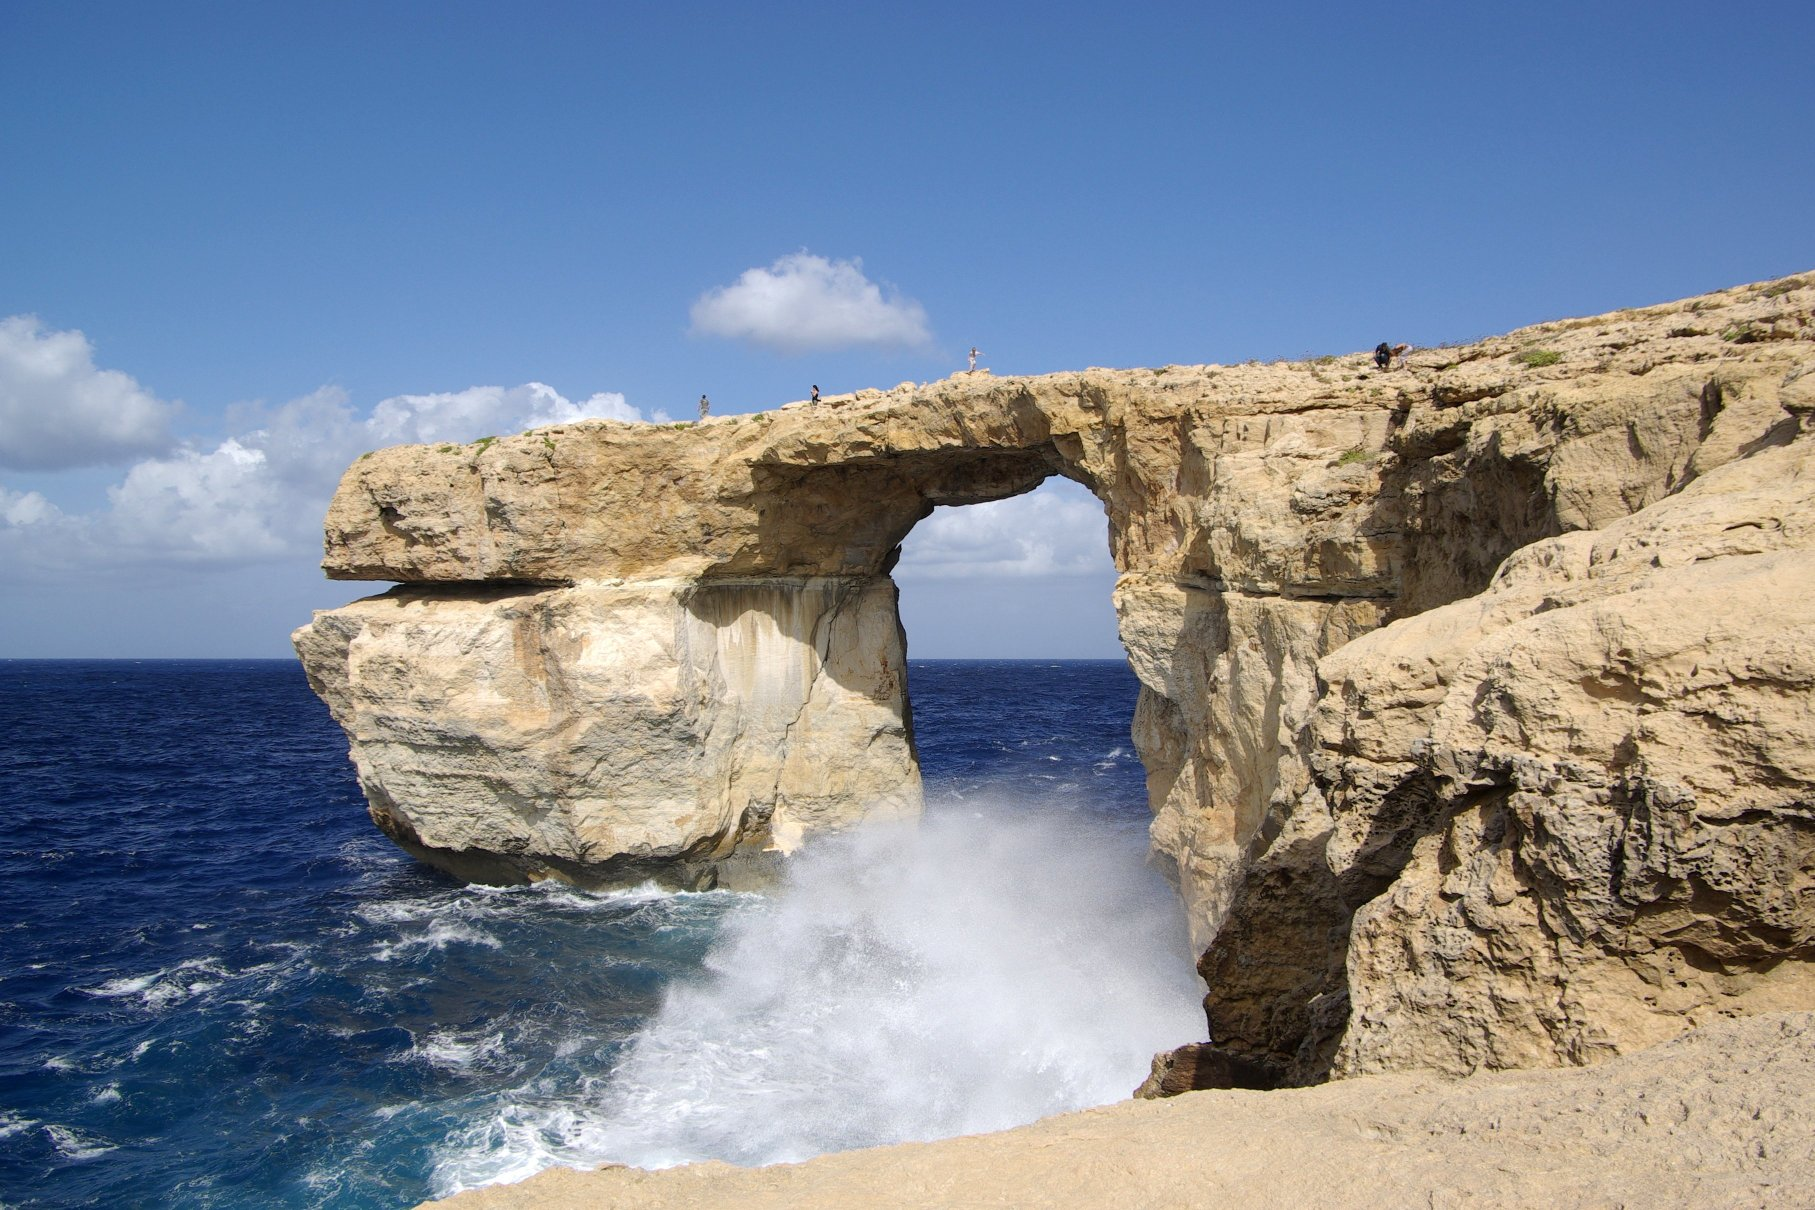 Malta Gozo Google image from http://upload.wikimedia.org/wikipedia/commons/f/f7/Malta_Gozo_Azure_Window_BW_2011-10-08_11-08-29.JPG